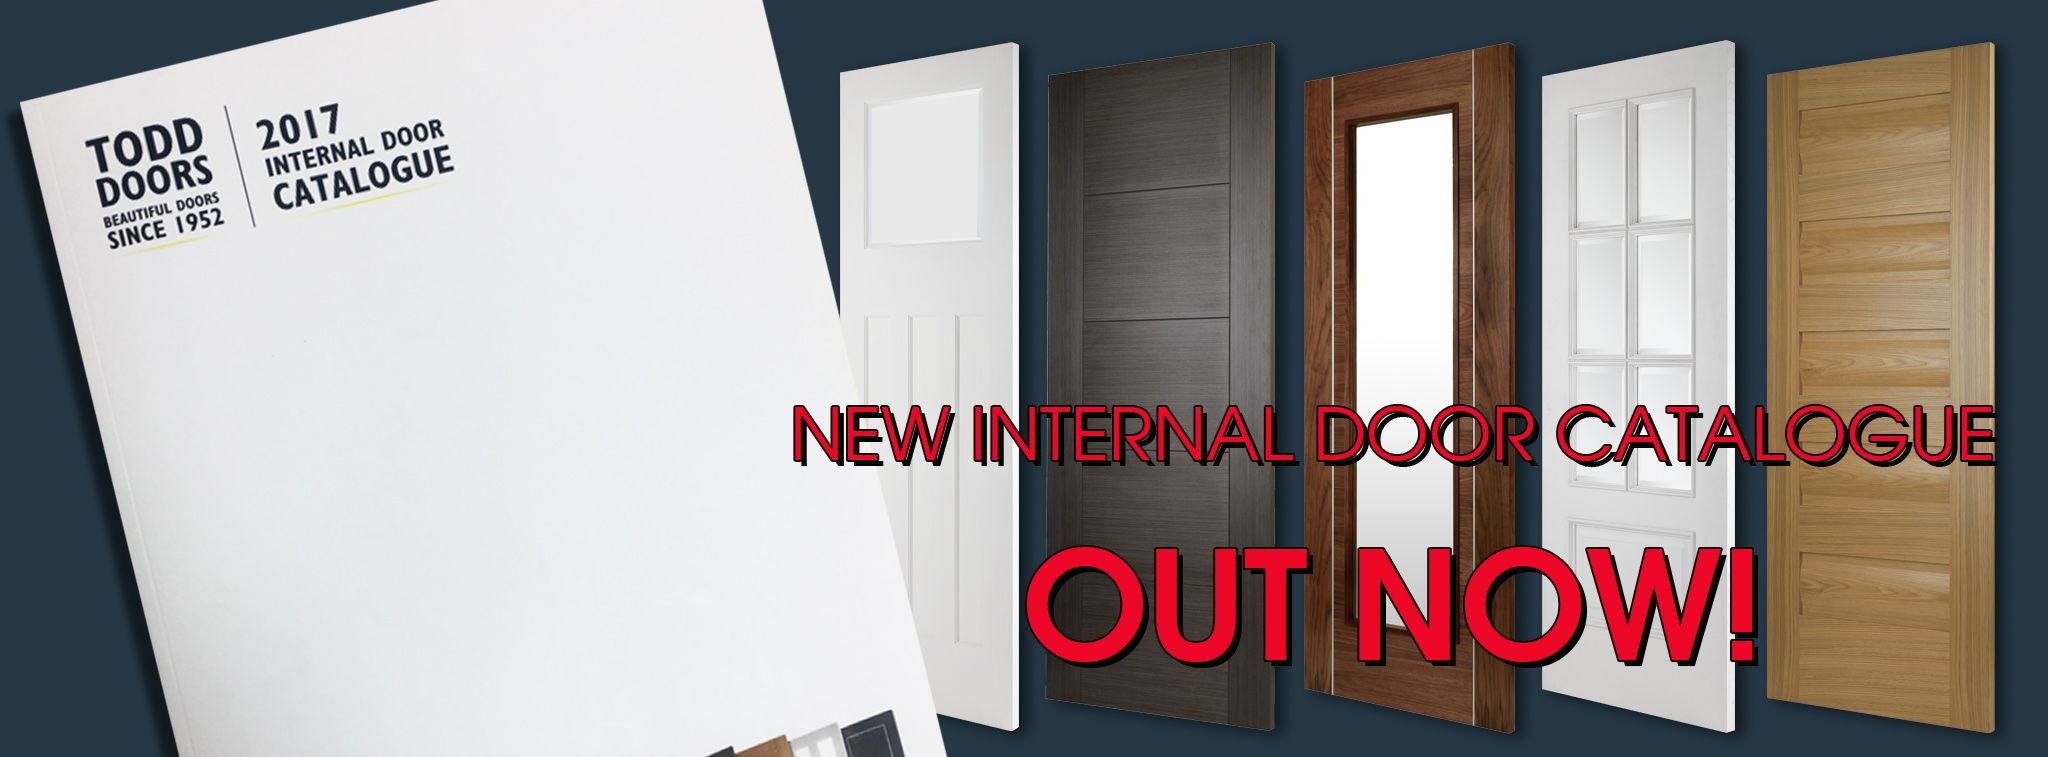 Order Our New 2017 Internal Door Catalogue 30 Exclusive Designs And